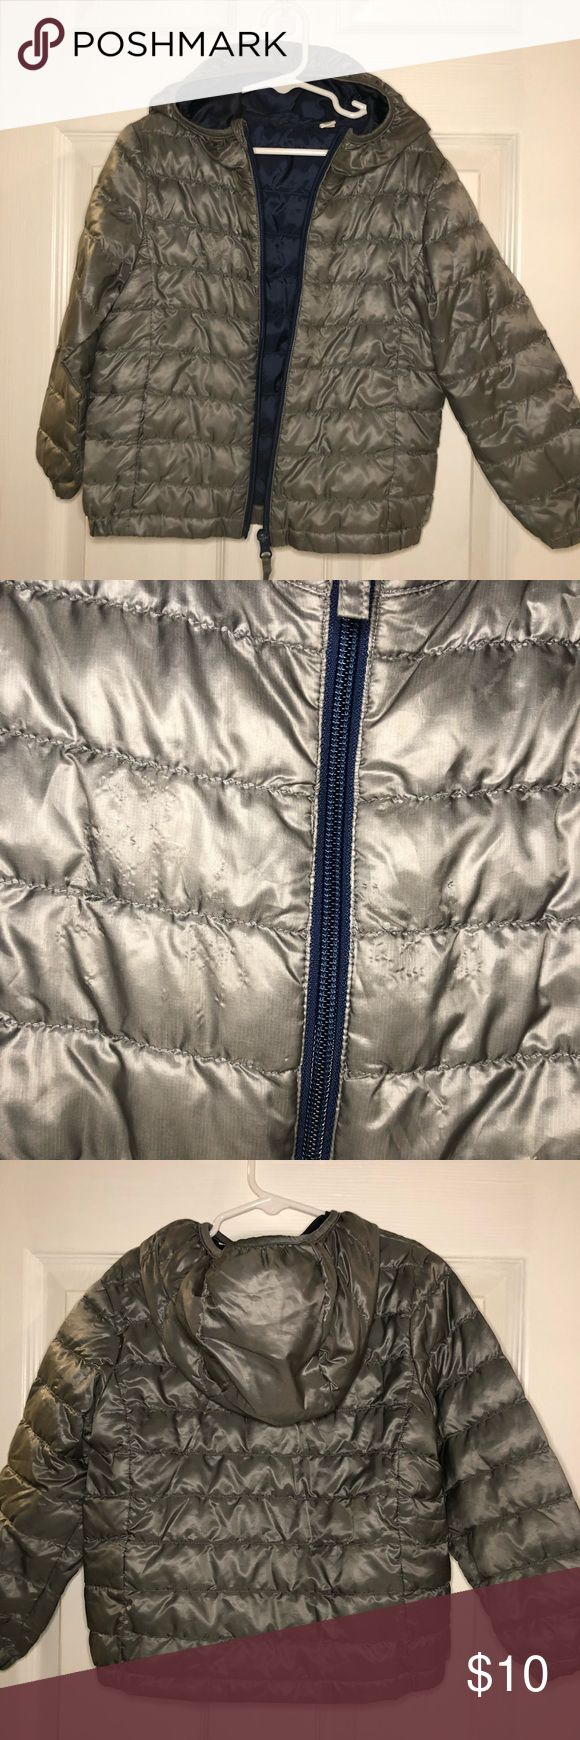 Uniqlo Down Jacket Uniqlo light down puffer jacket. Minor scratches on the front of the jacket, see photo. Uniqlo Jackets & Coats Puffers